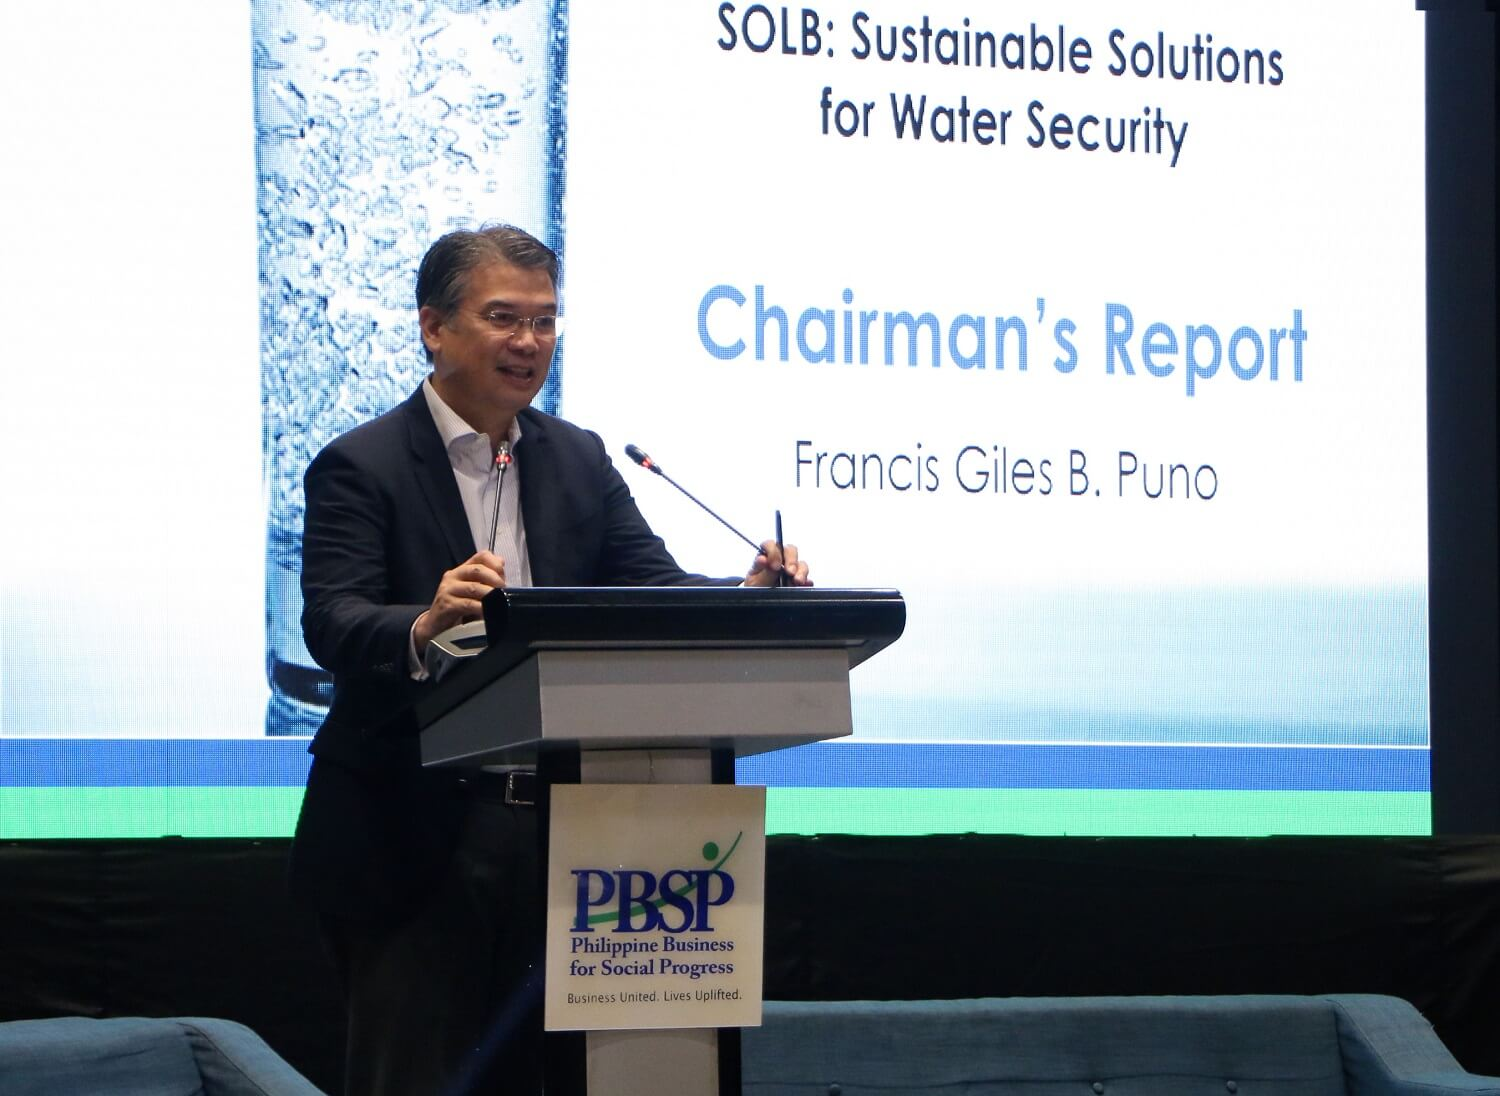 Photo of Chairman Francis Giles B. Puno giving a keynote speech on SOLB: Sustainable Solutions for Water Security